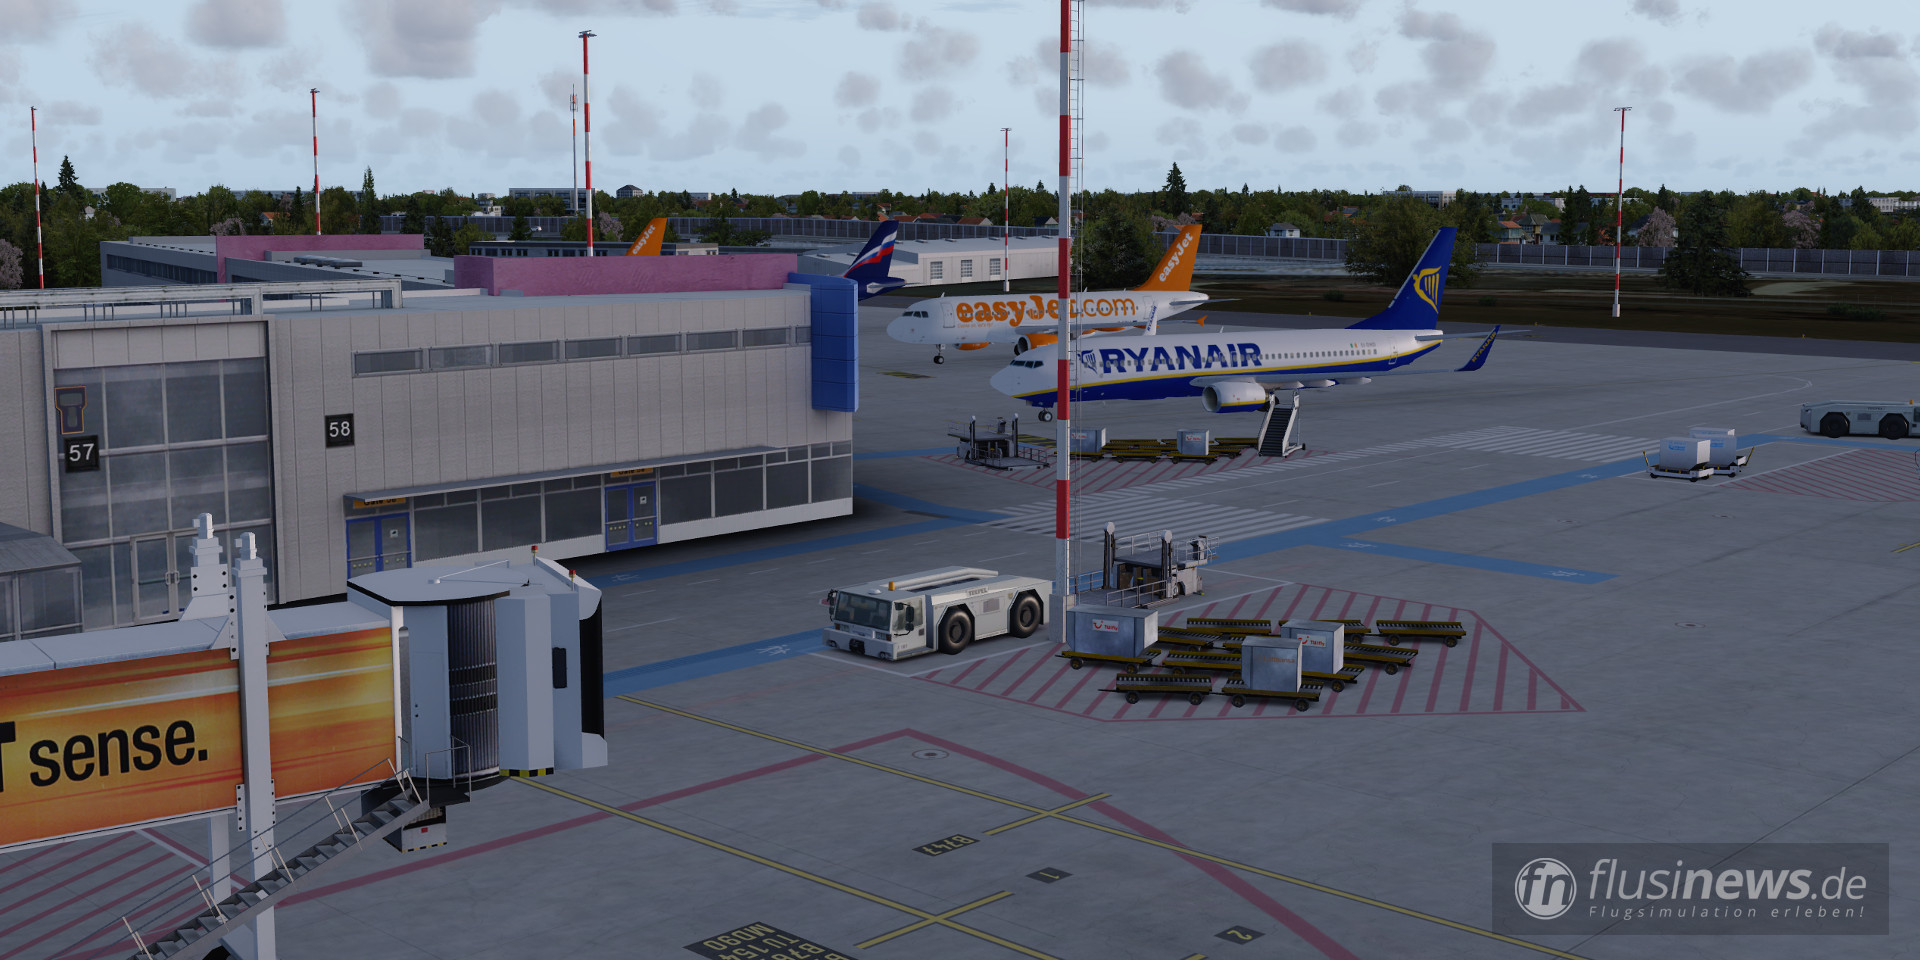 Aerosoft Mega Airport Berlin-Brandenburg professional fnDE Review 44